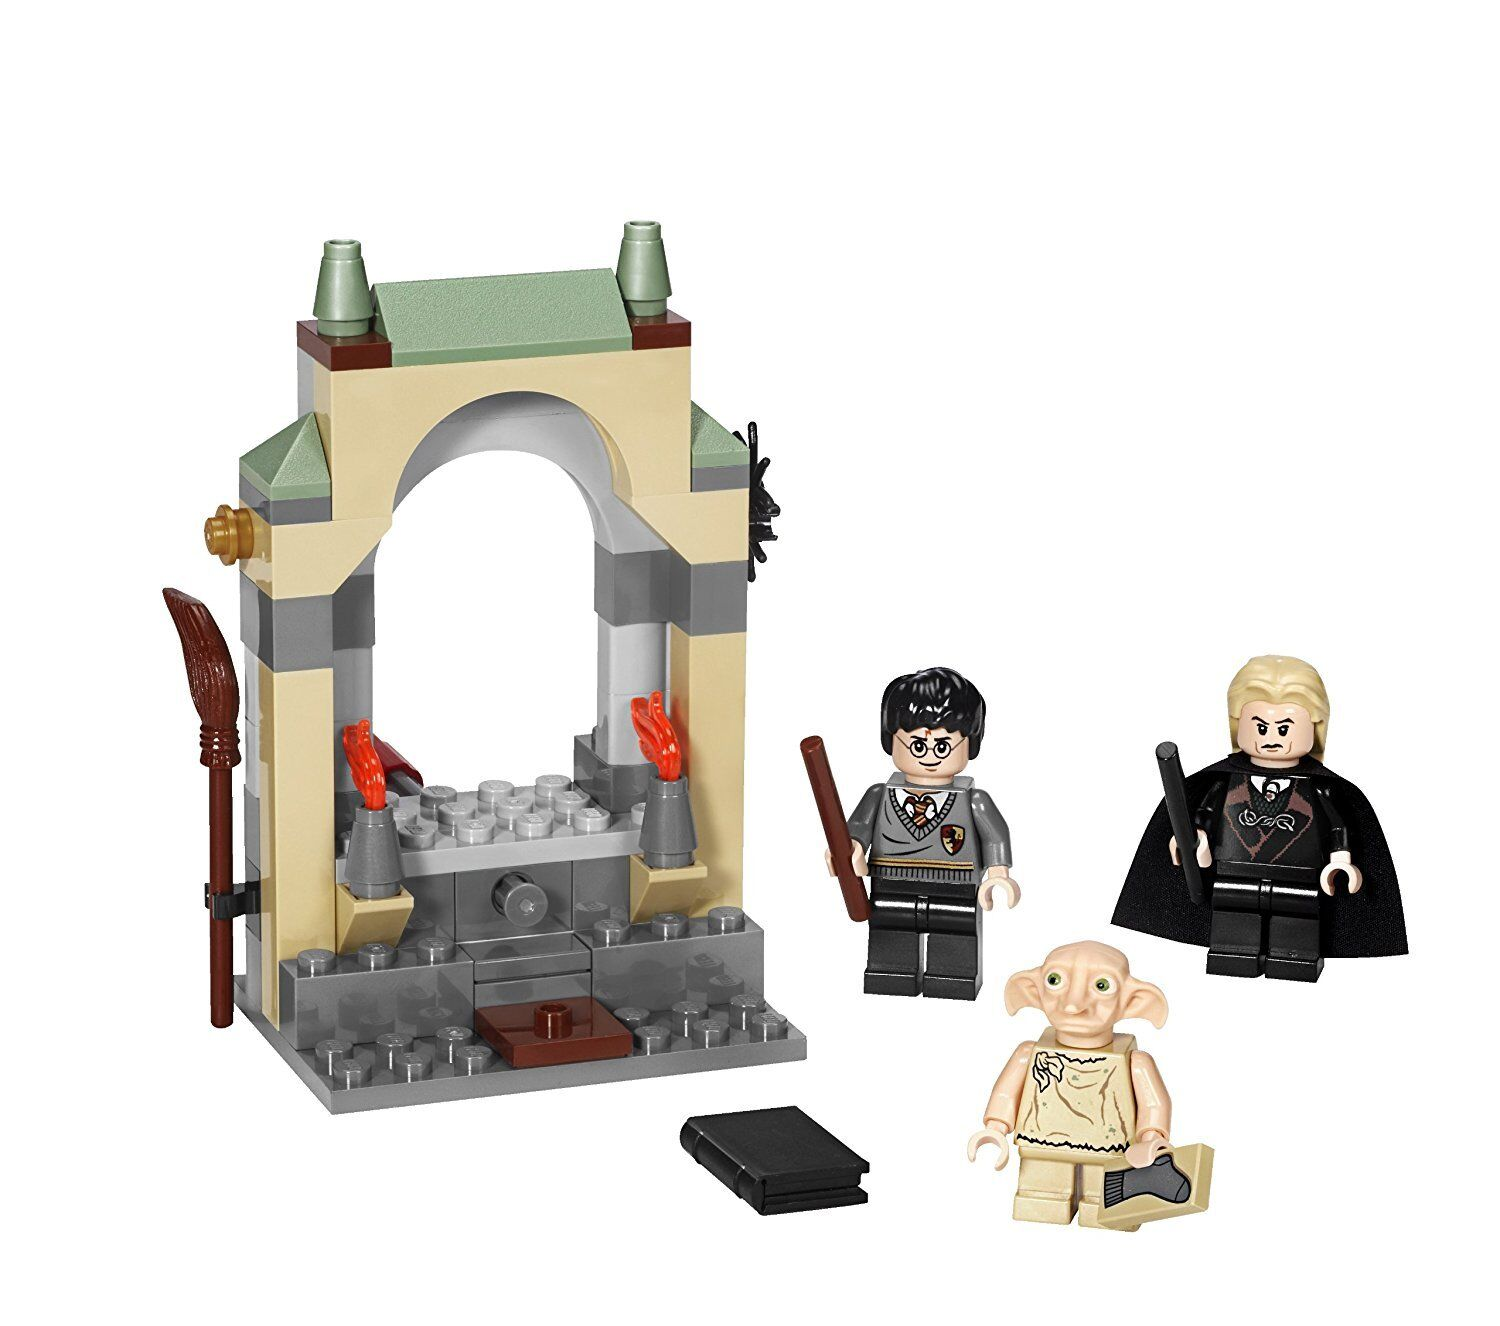 NEW IN BOX - LEGO LEGO LEGO Harry Potter Freeing Dobby - 4736 - 73 pieces - RETIRED 6153e9